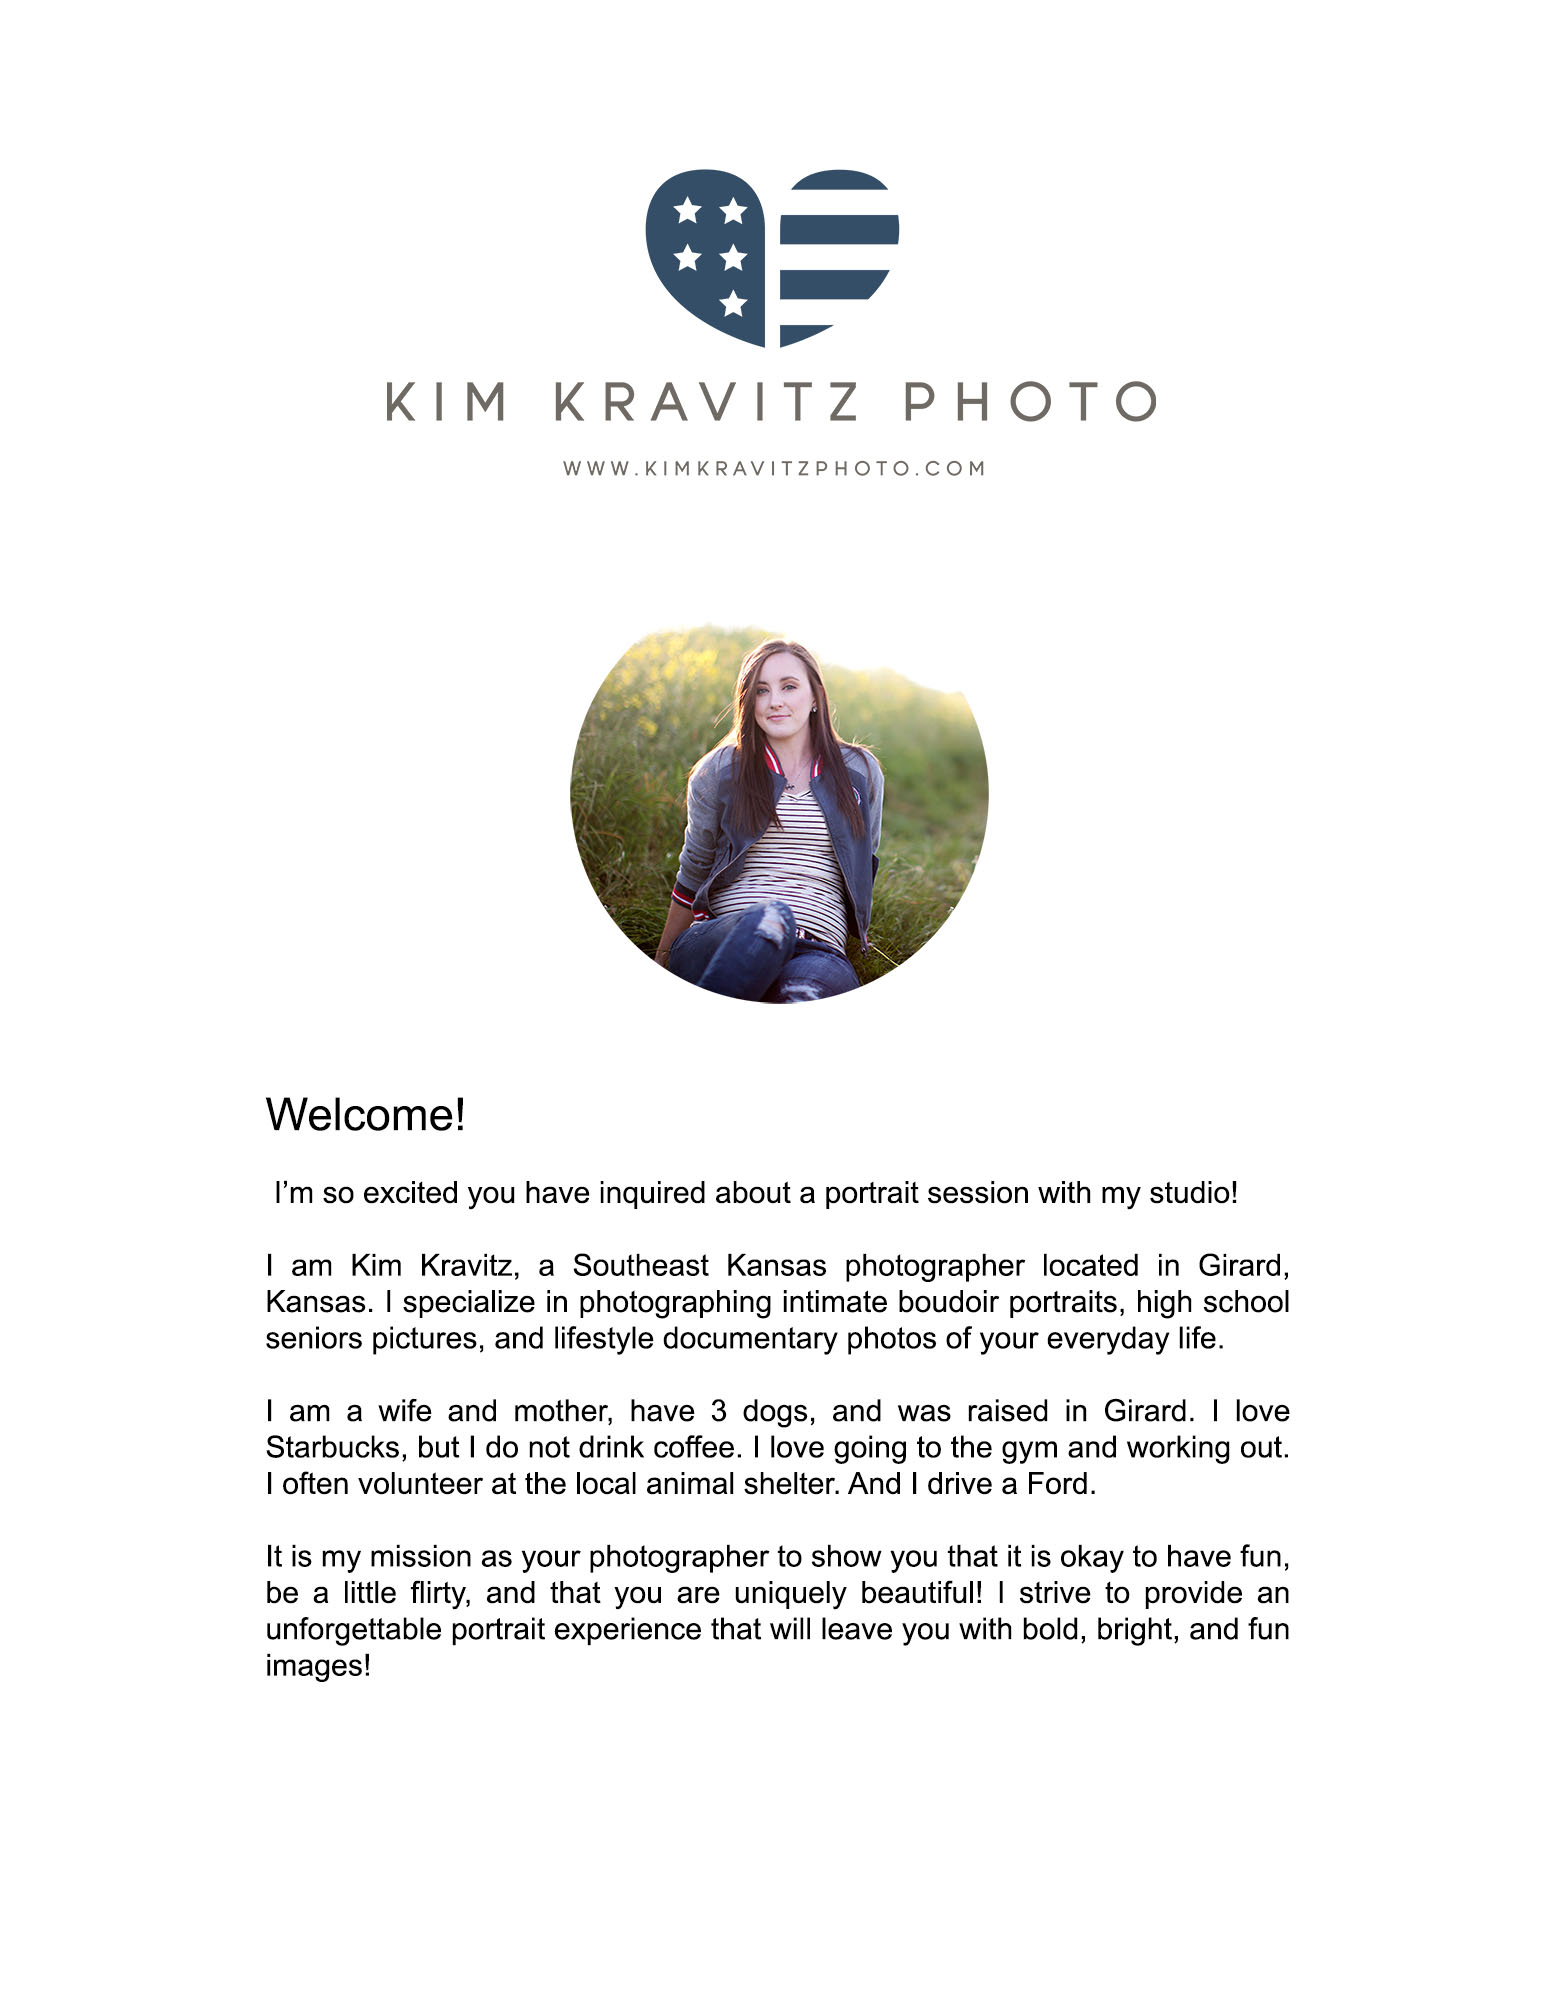 High School Senior Pricing Guide Girard Kansas Kim Kravitz